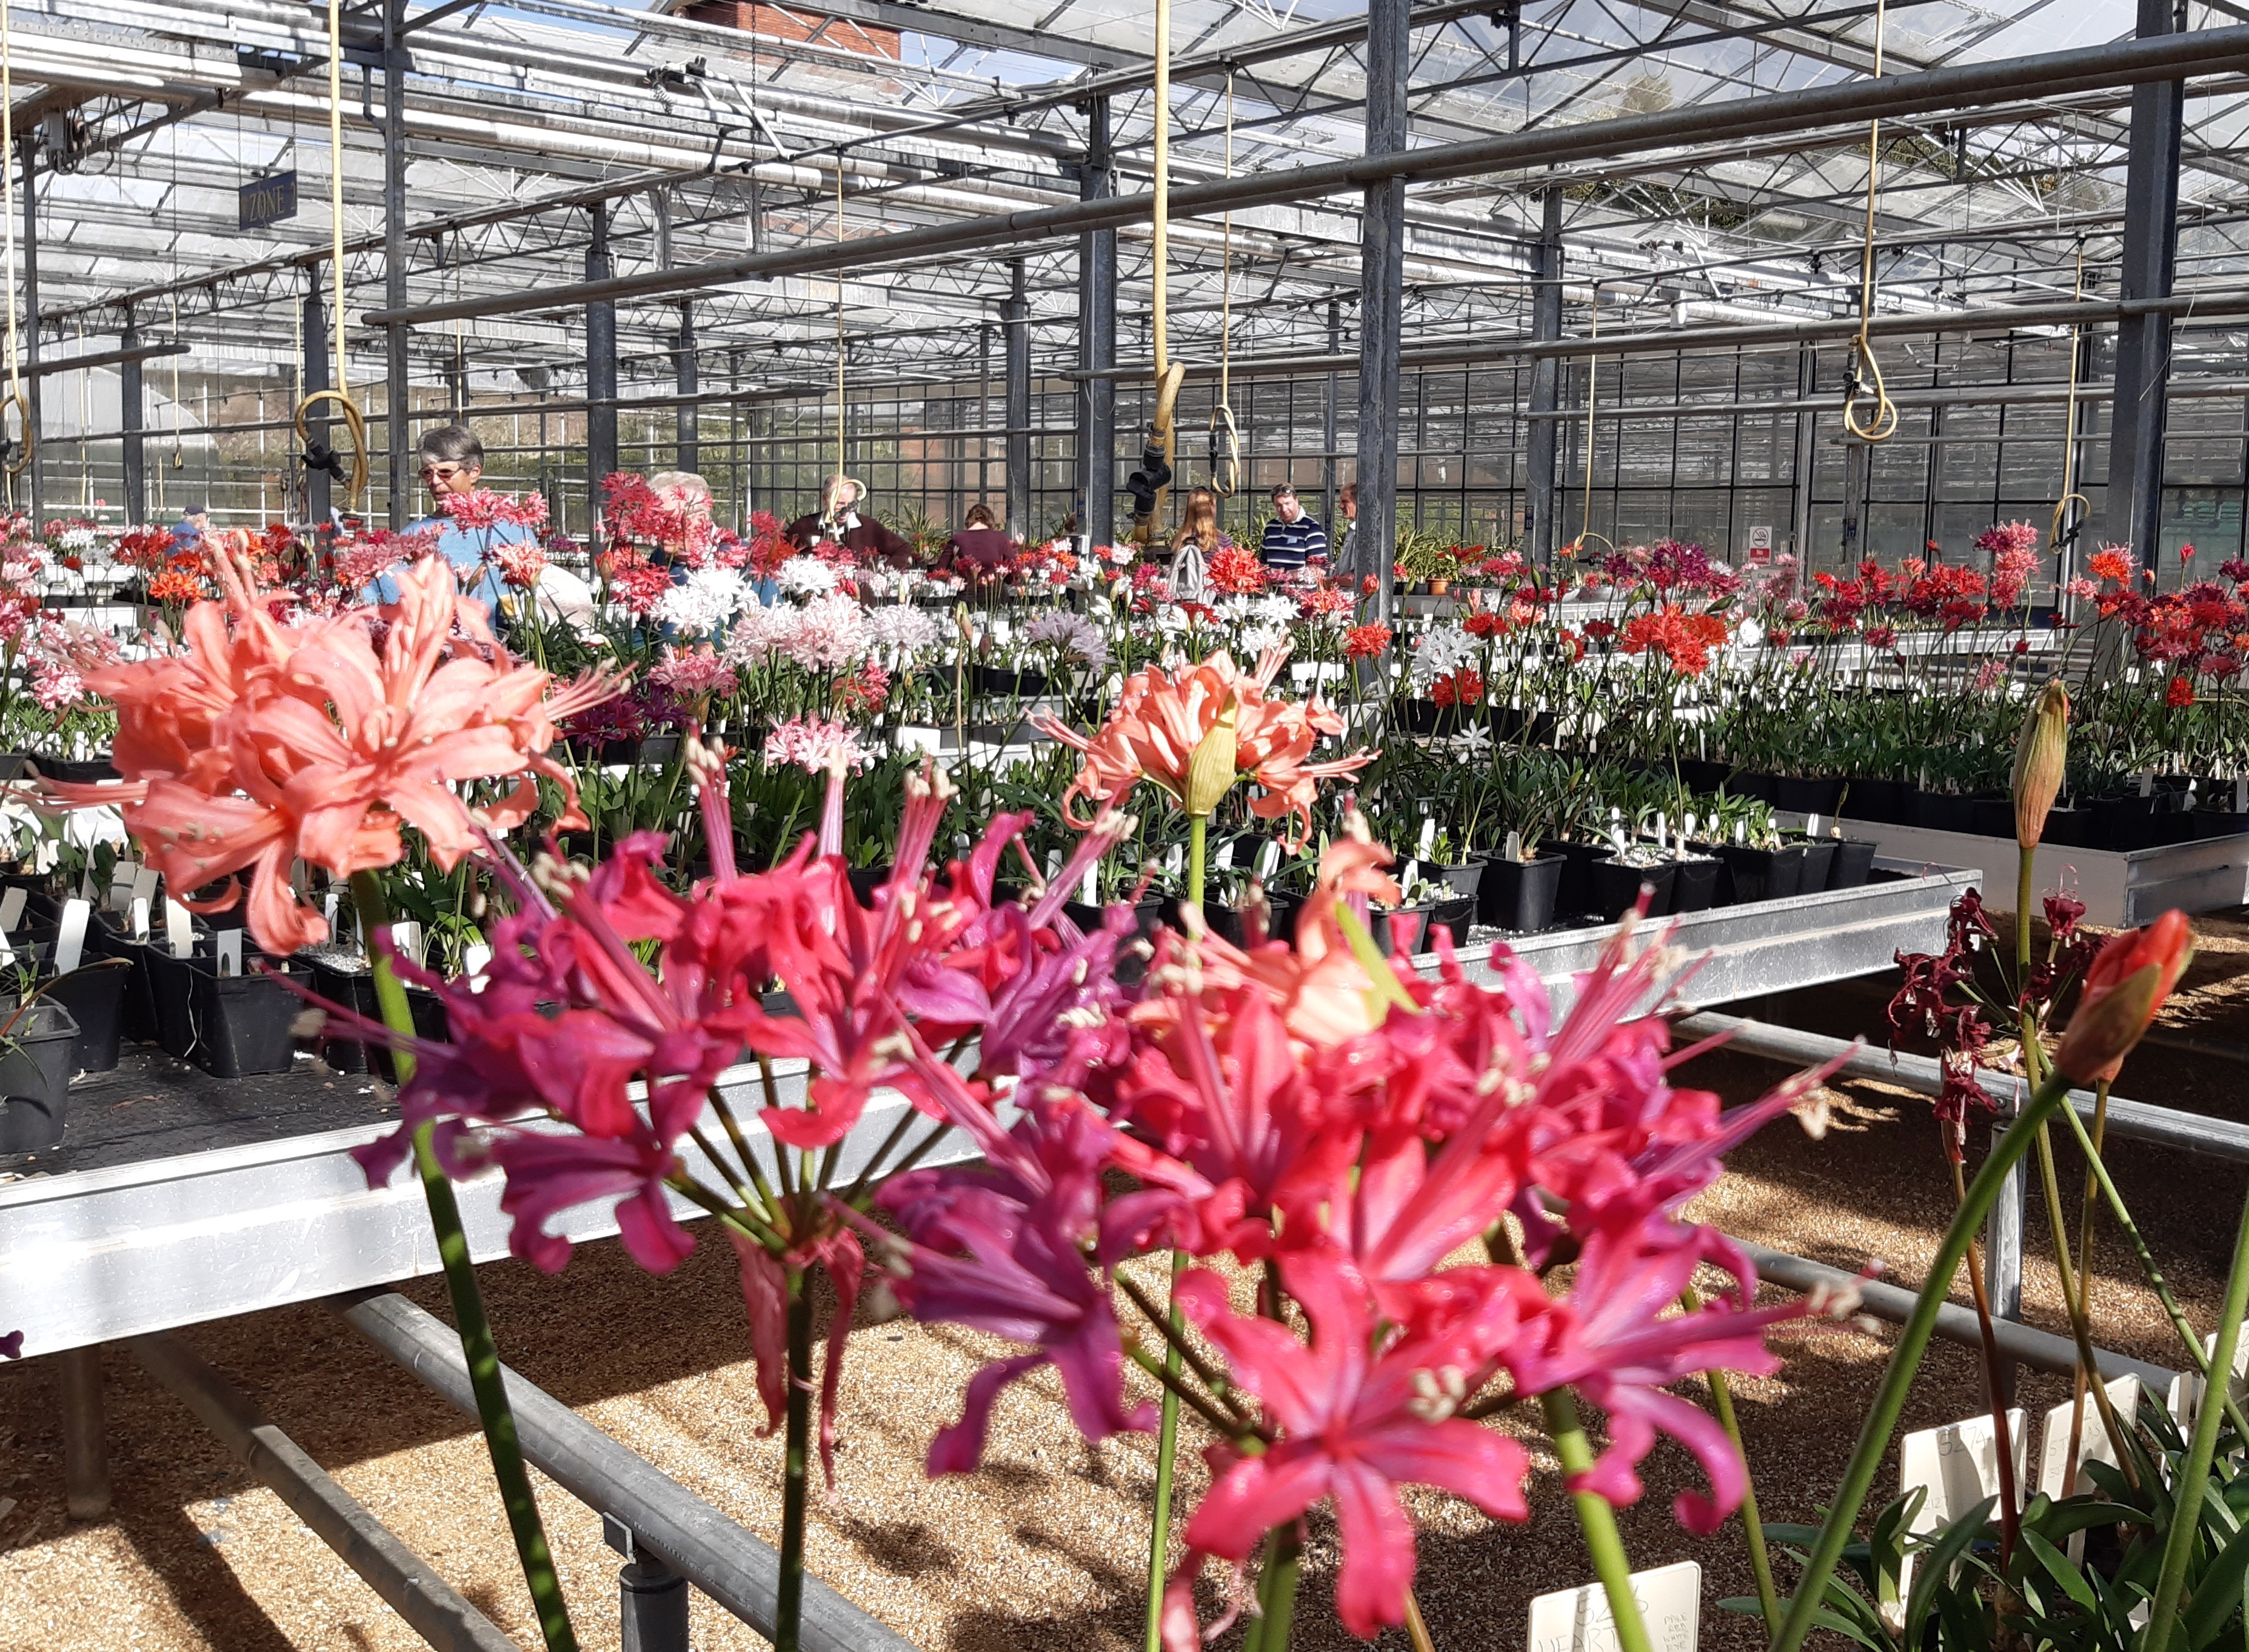 Members viewing the beautiful Nerine blooms in the glasshouse.